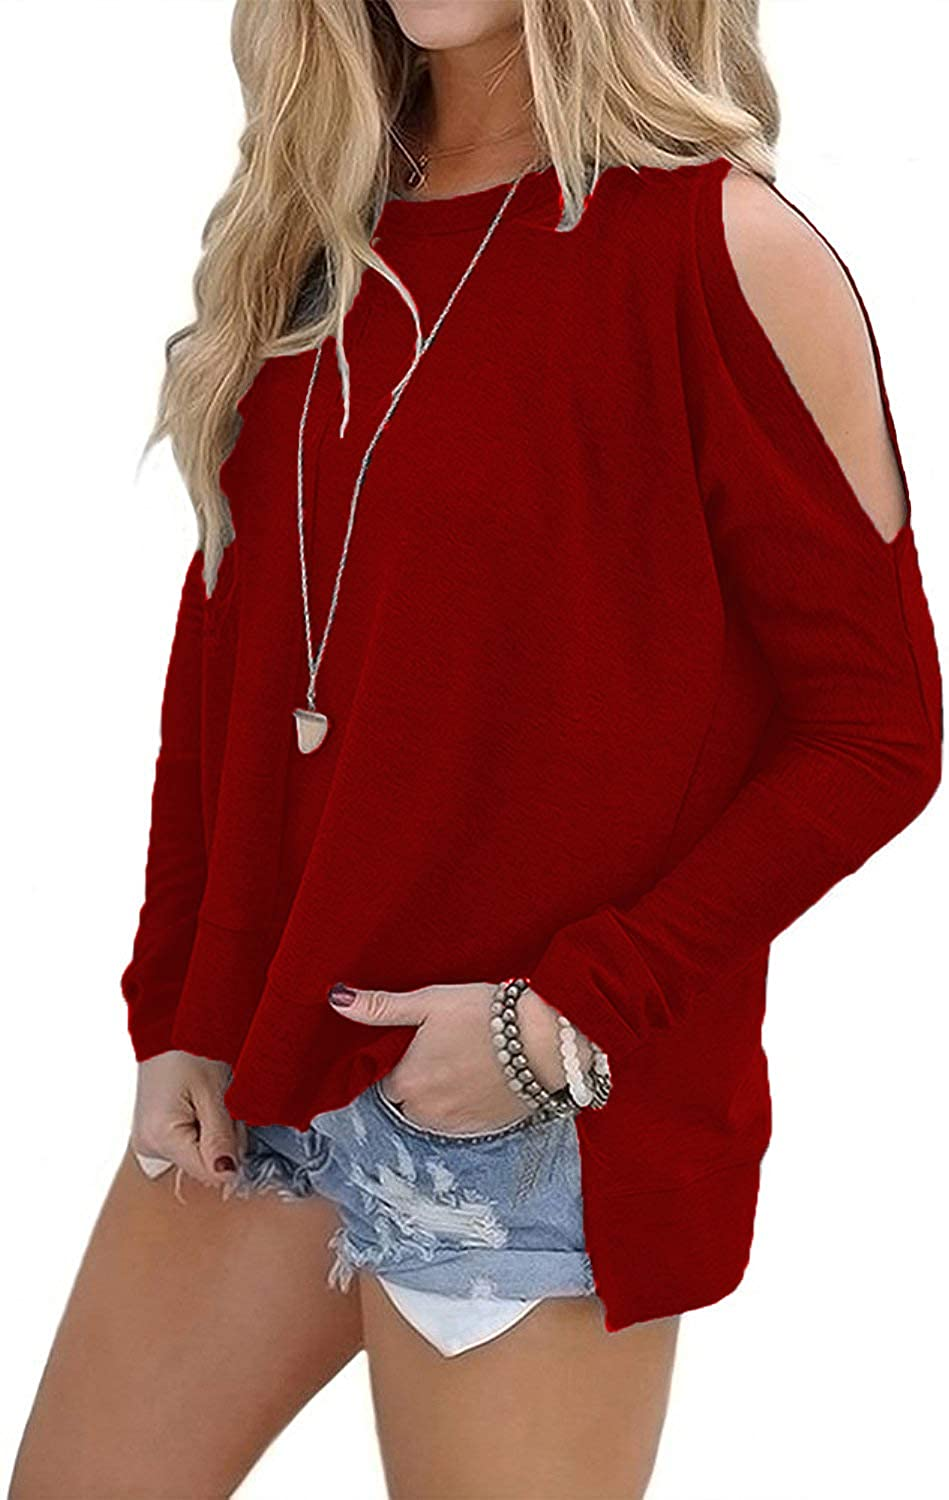 49a3d901eb0464 BLUETIME Women s Cold Shoulder Tops High Low T Shirts Side Slits Long  Sleeve Sweatshirt at Amazon Women s Clothing store